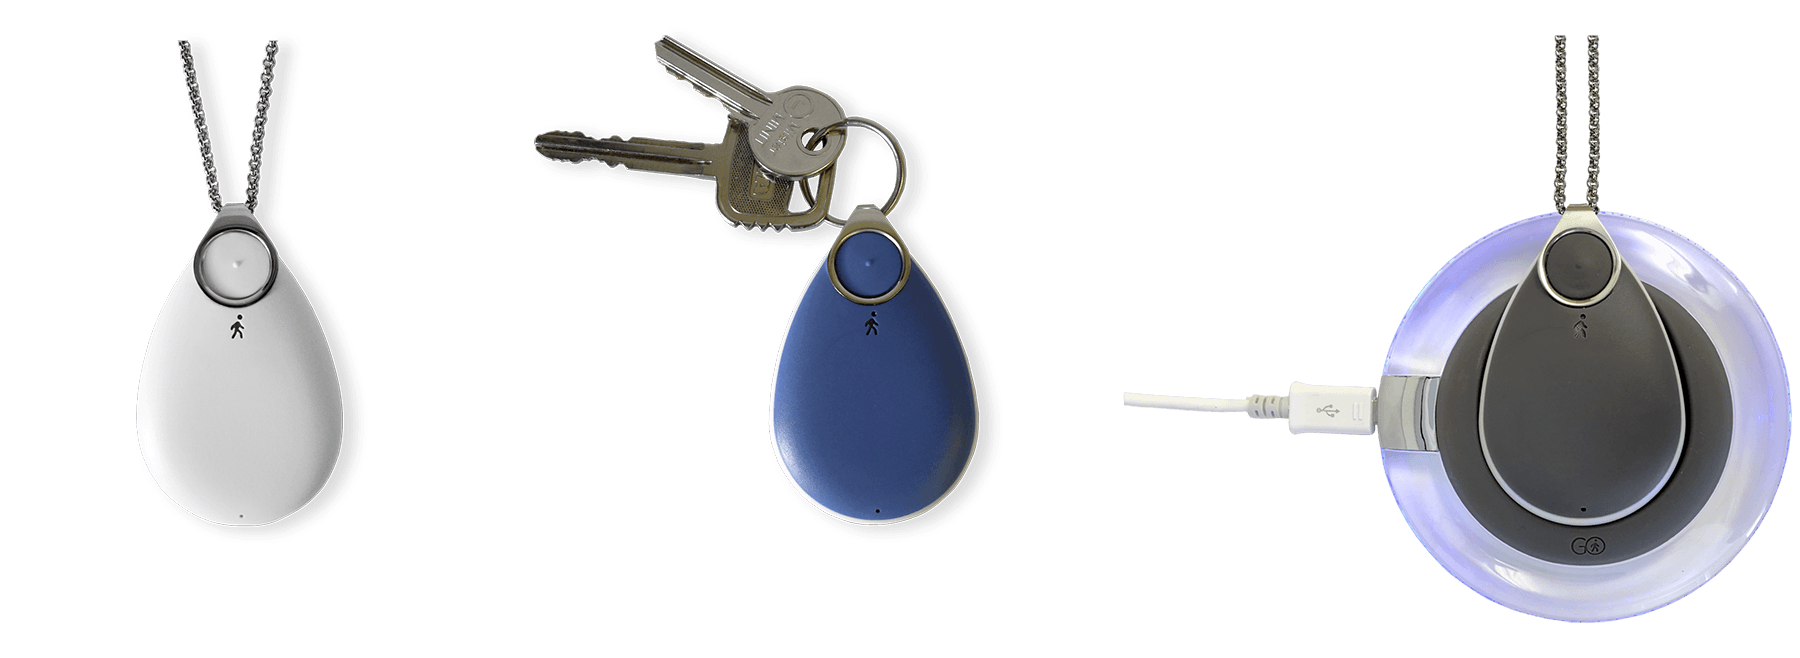 Mobile Alarm Pendant, GO, with GPS tracking, speakerphone in three colours